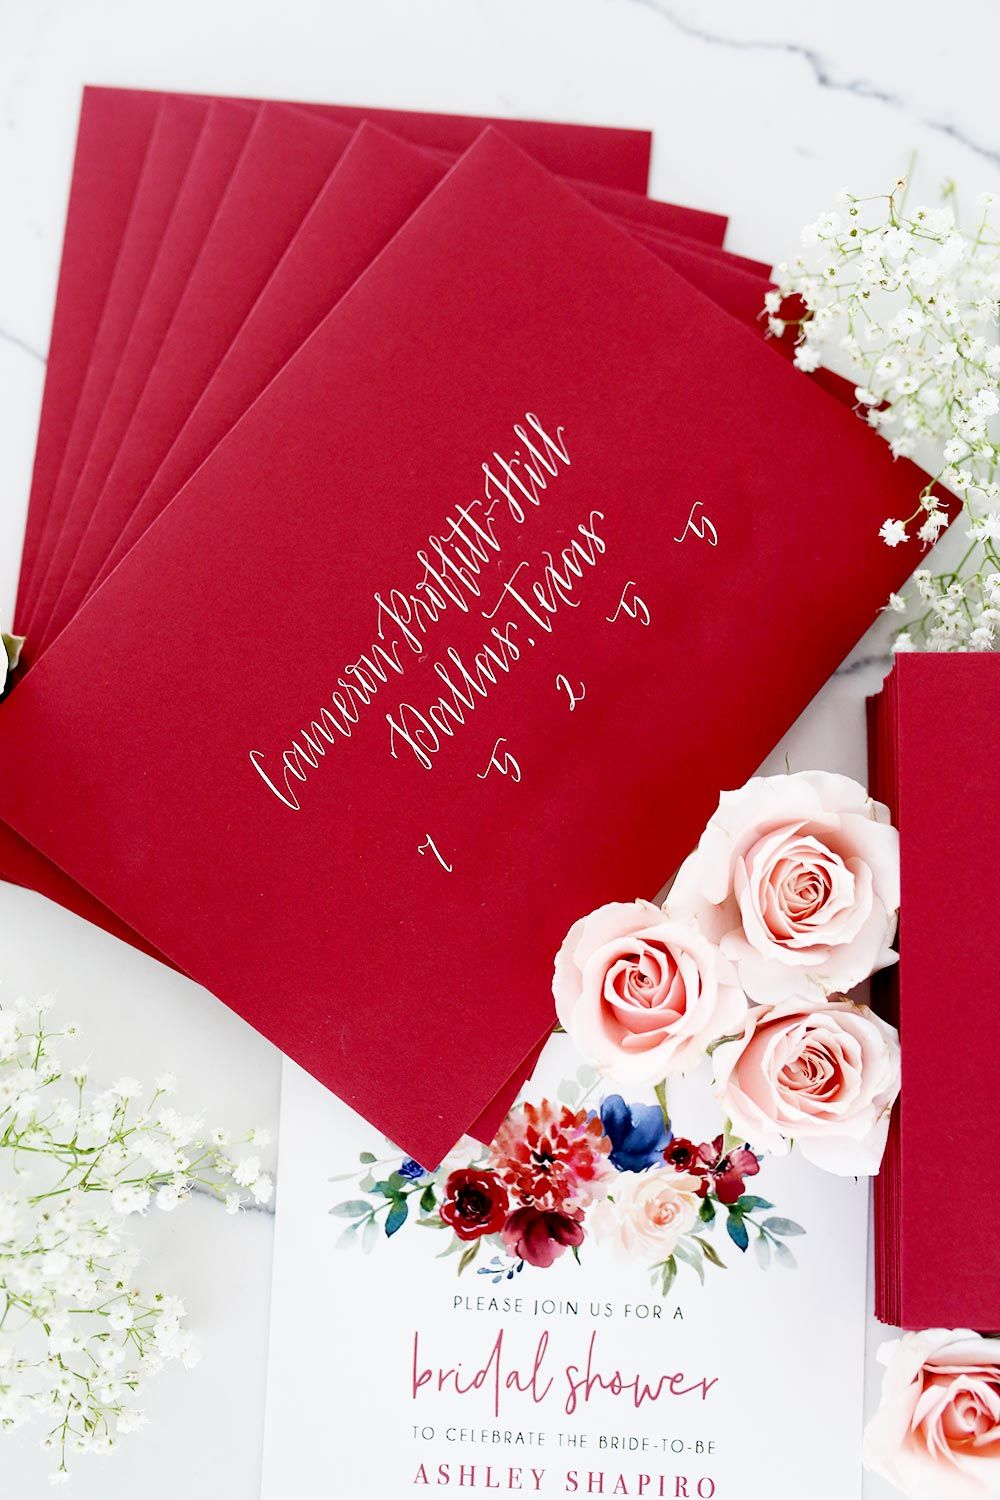 16 Creative Ways to Use Calligraphy - Burgundy wedding invitations ...